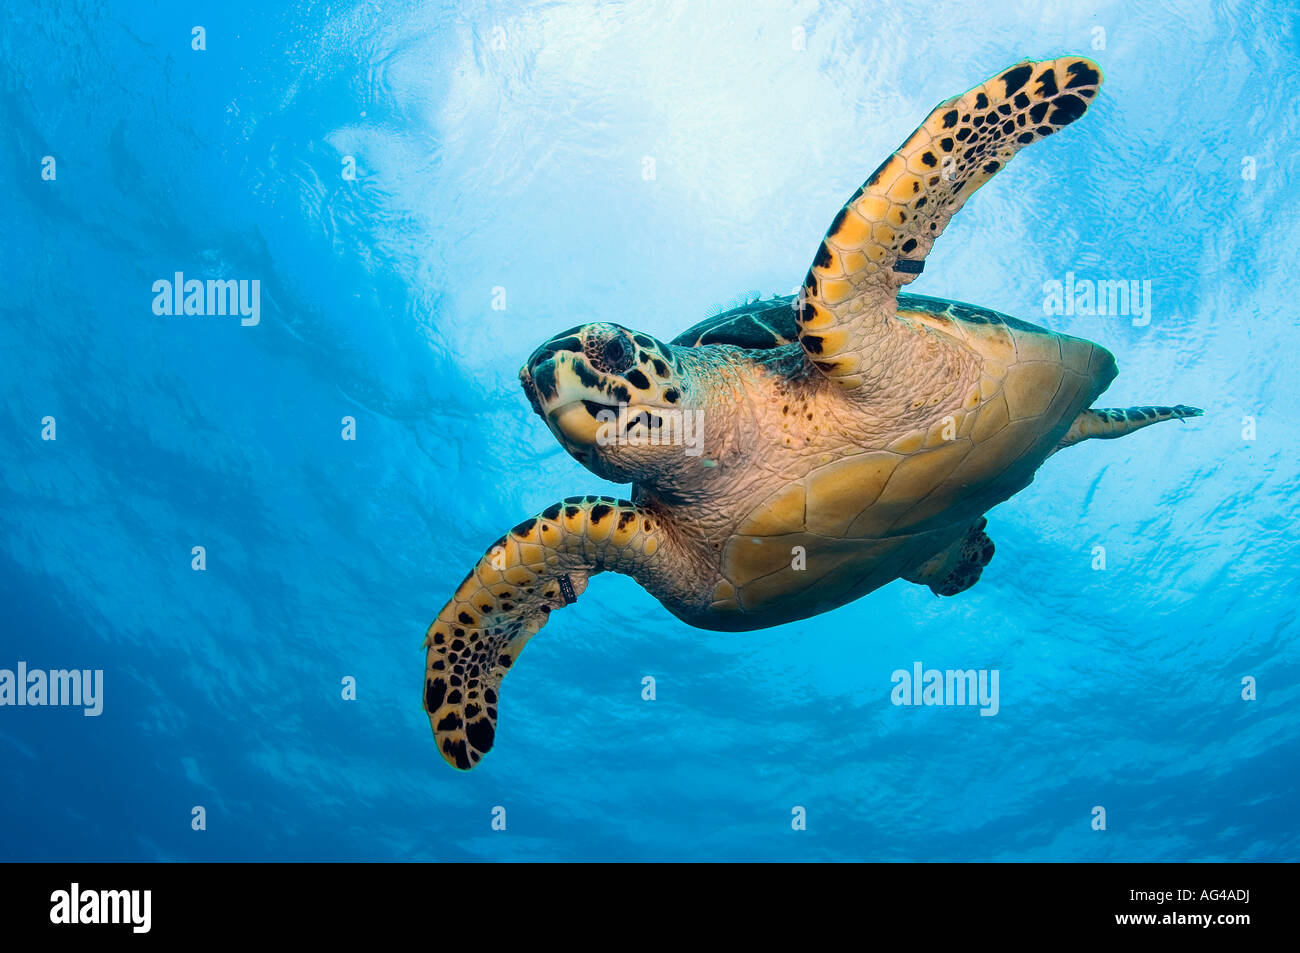 An endangered Hawksbill Sea Turtle (Eretmochelys imbricata) in Palm Beach, FL. - Stock Image